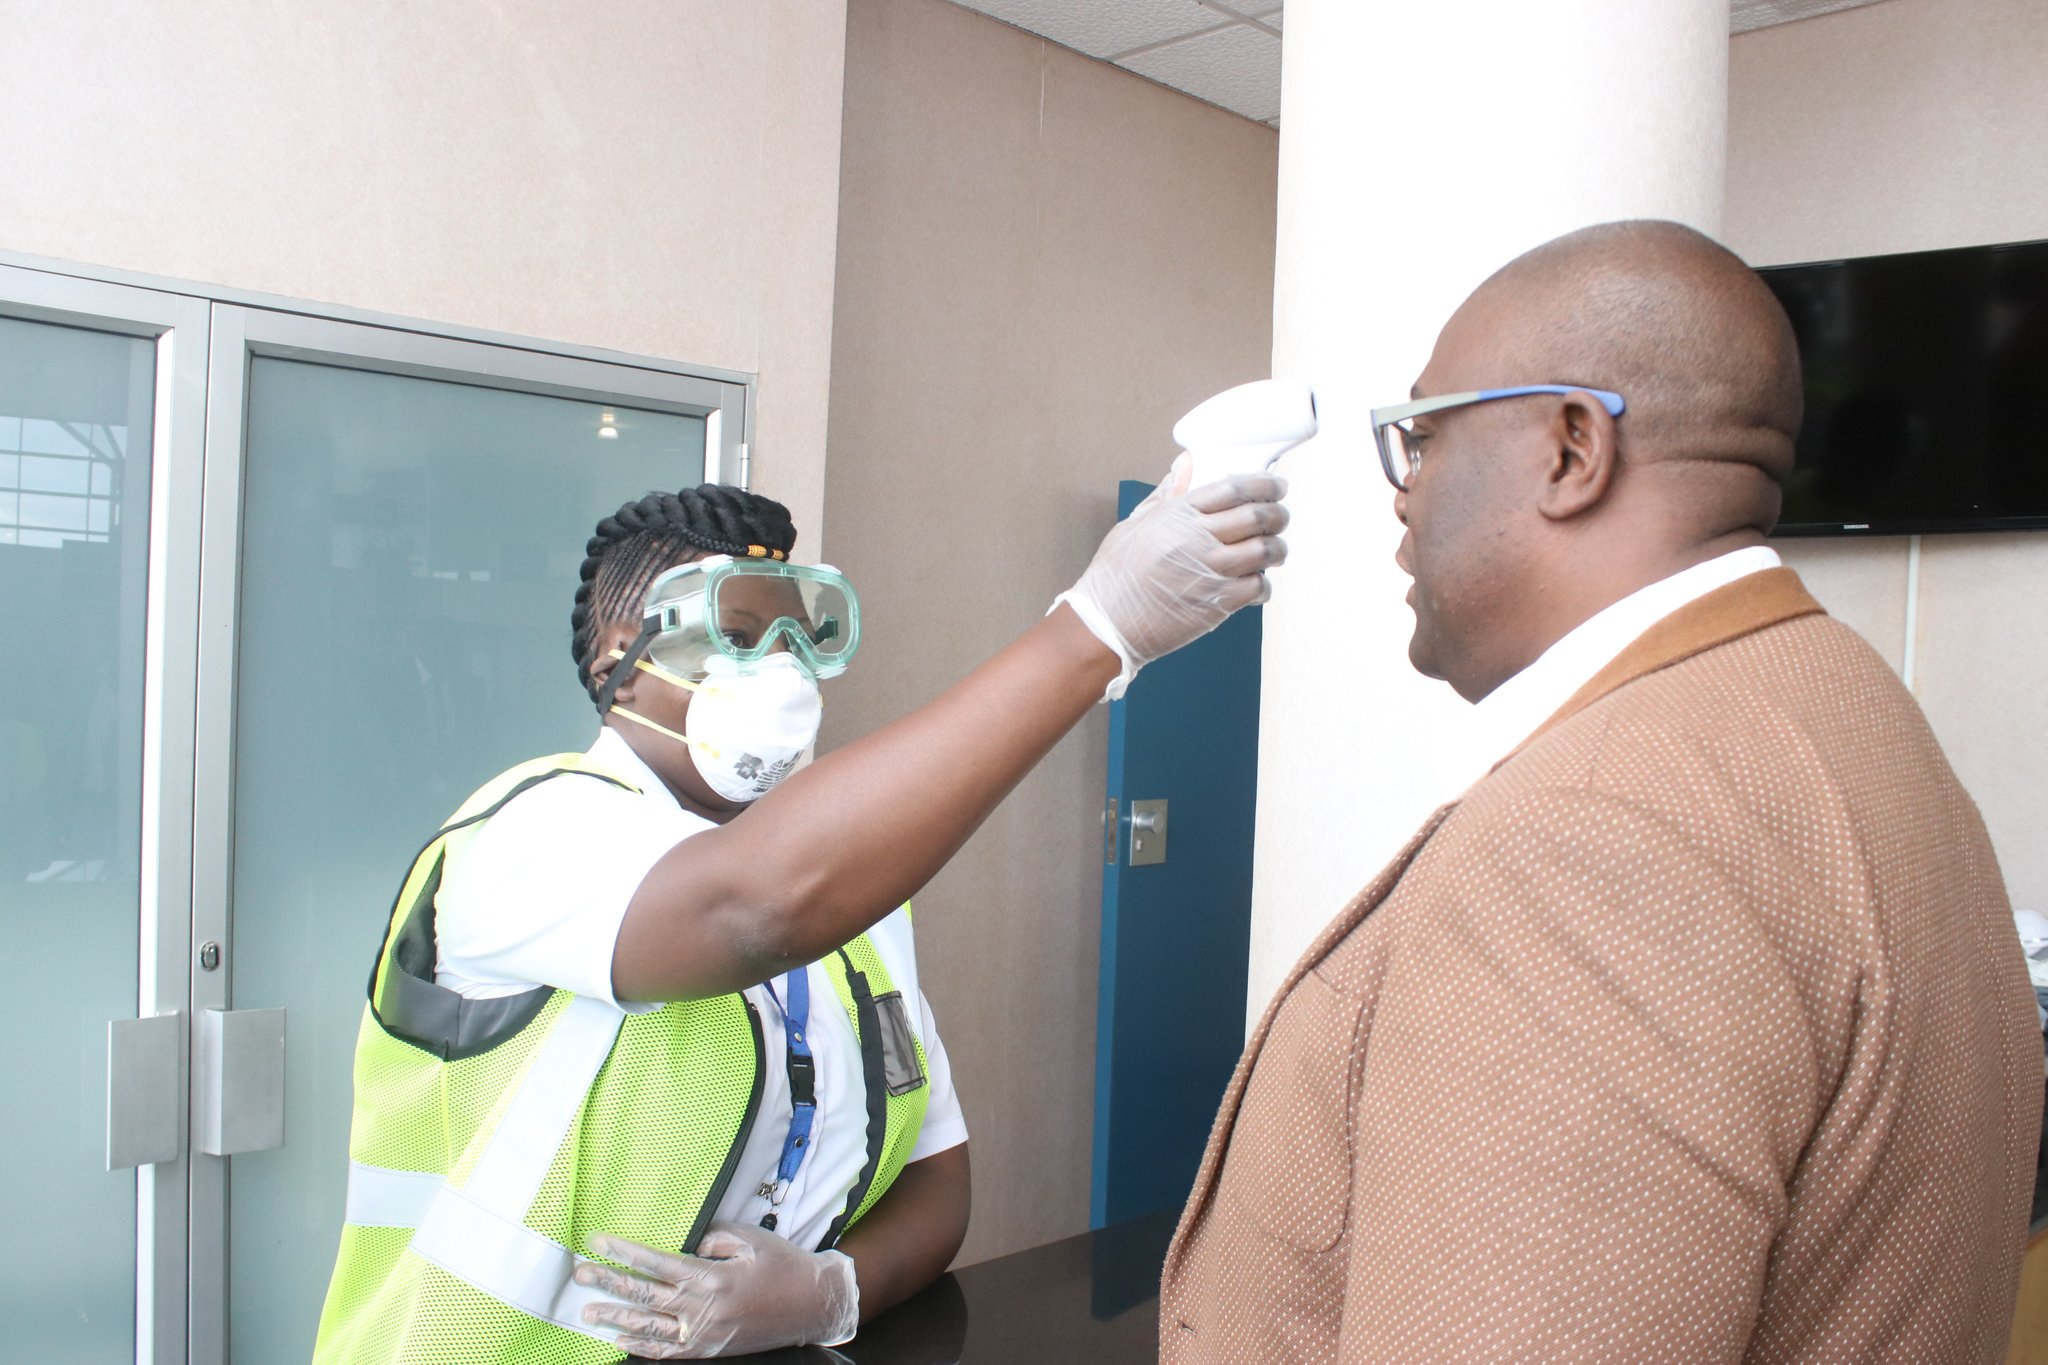 Why Only 3 Cases Of Coronavirus In Africa